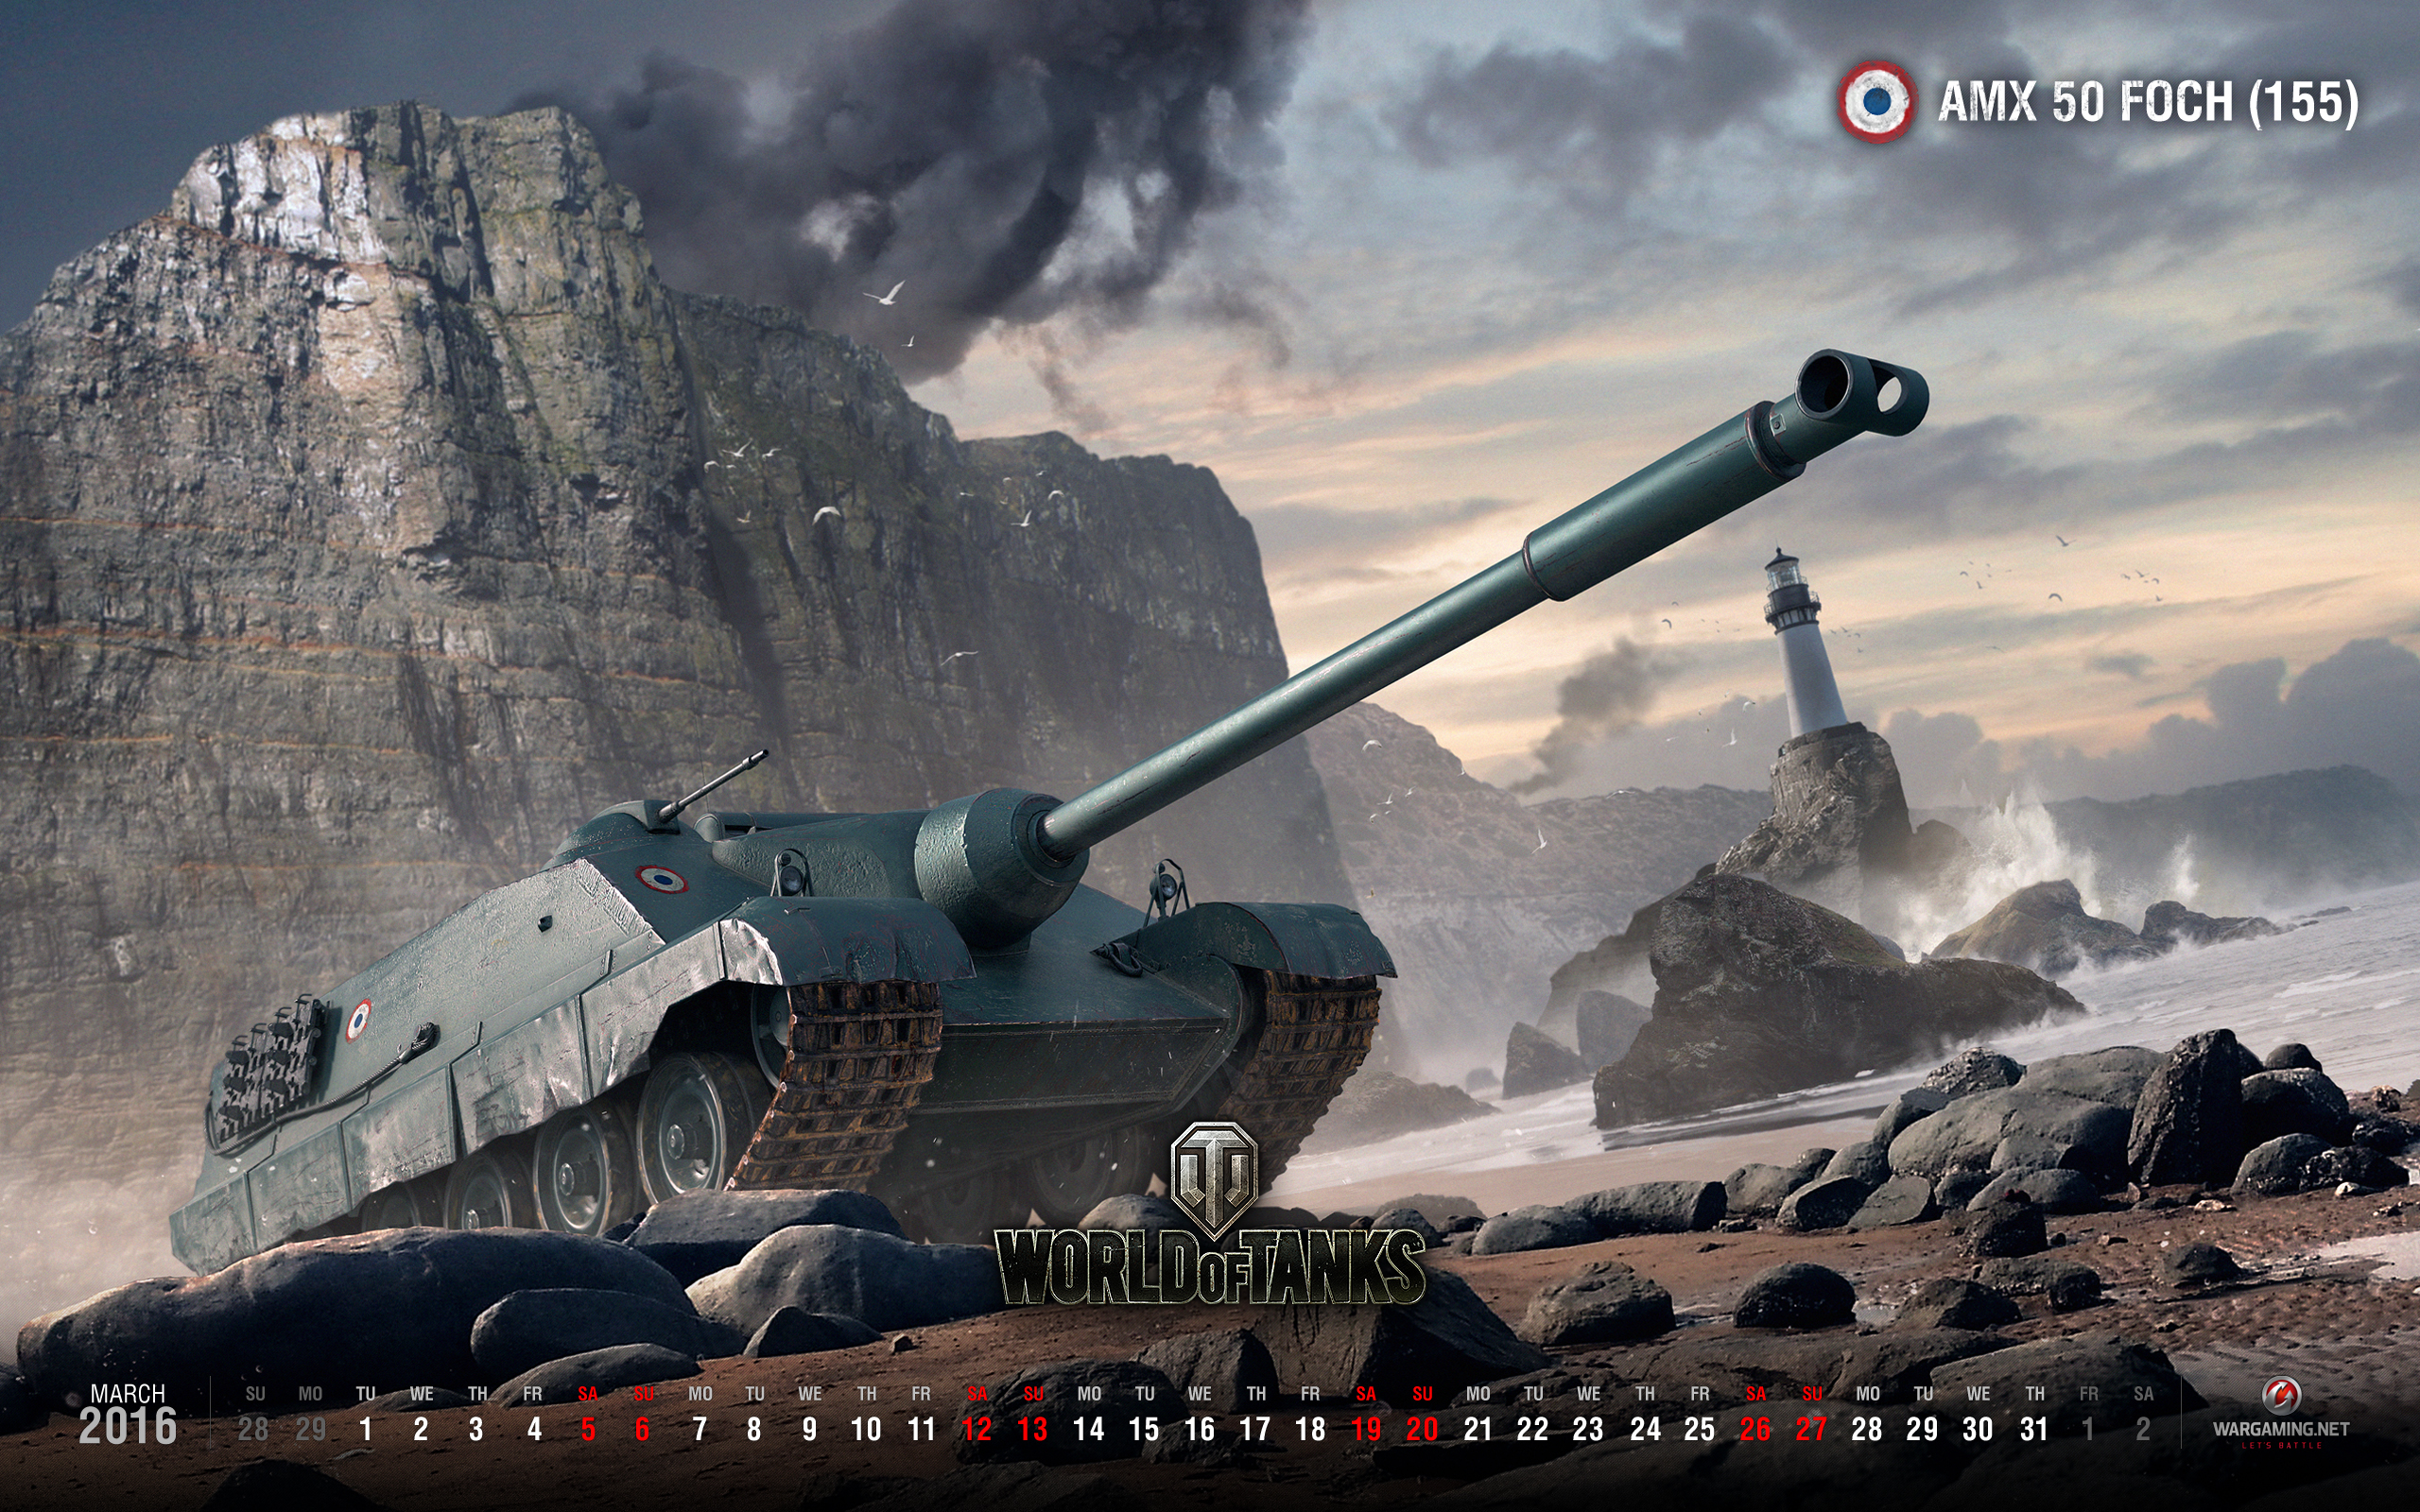 March 2016 Wallpaper Calendar Tanks World of Tanks media 2560x1600